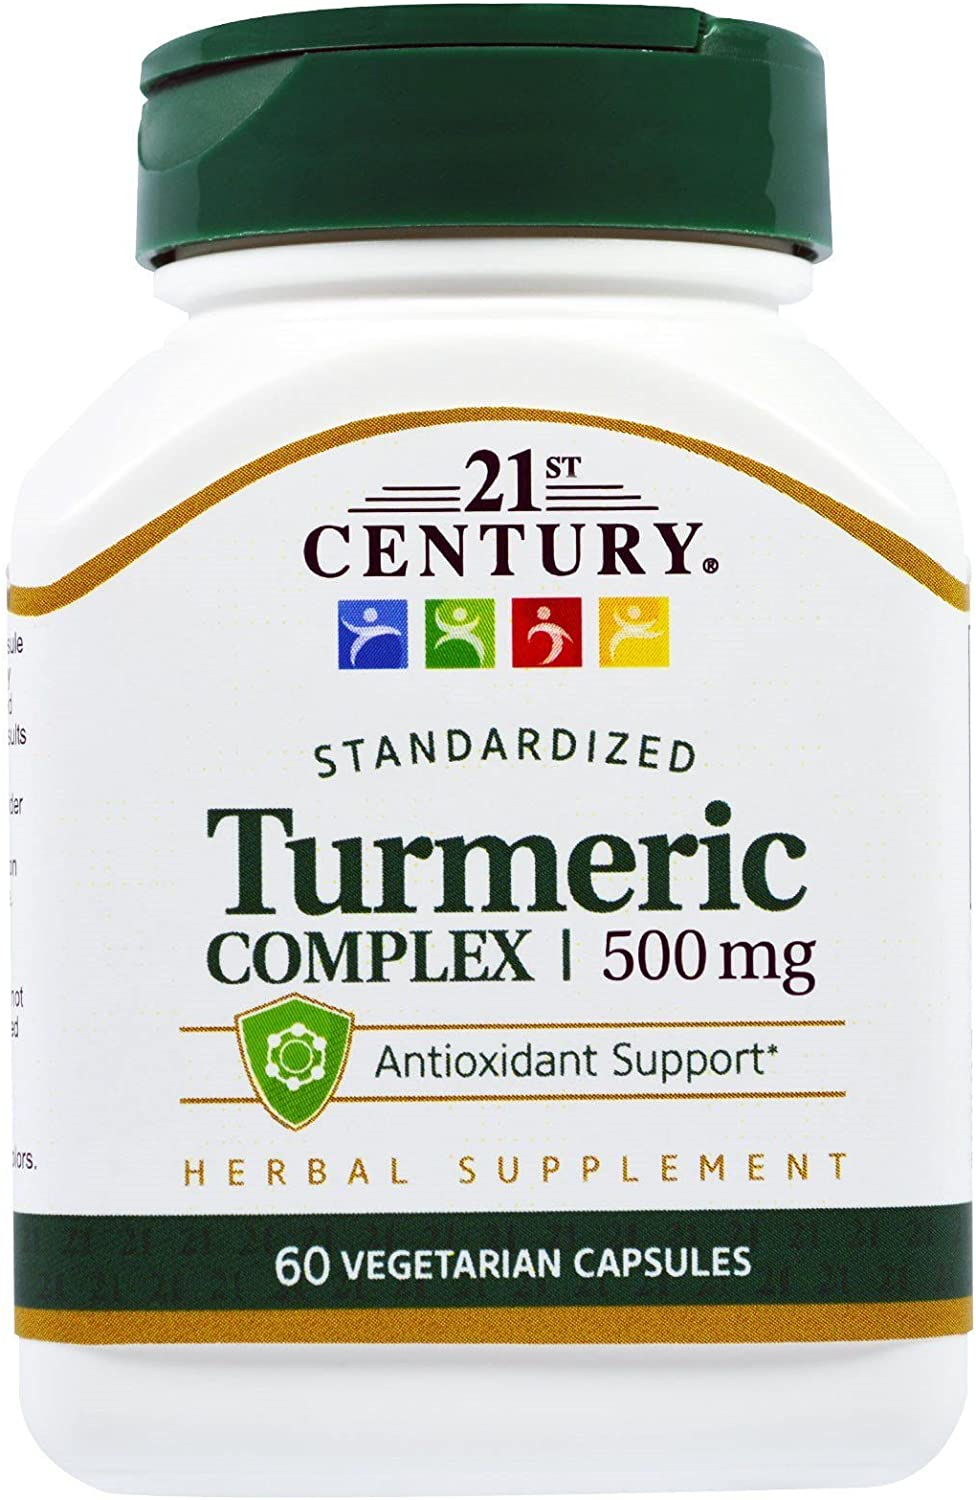 21st Century Turmeric Complex 500 Directly managed store mg 5 ☆ popular P 60 - Capsules Vegetarian